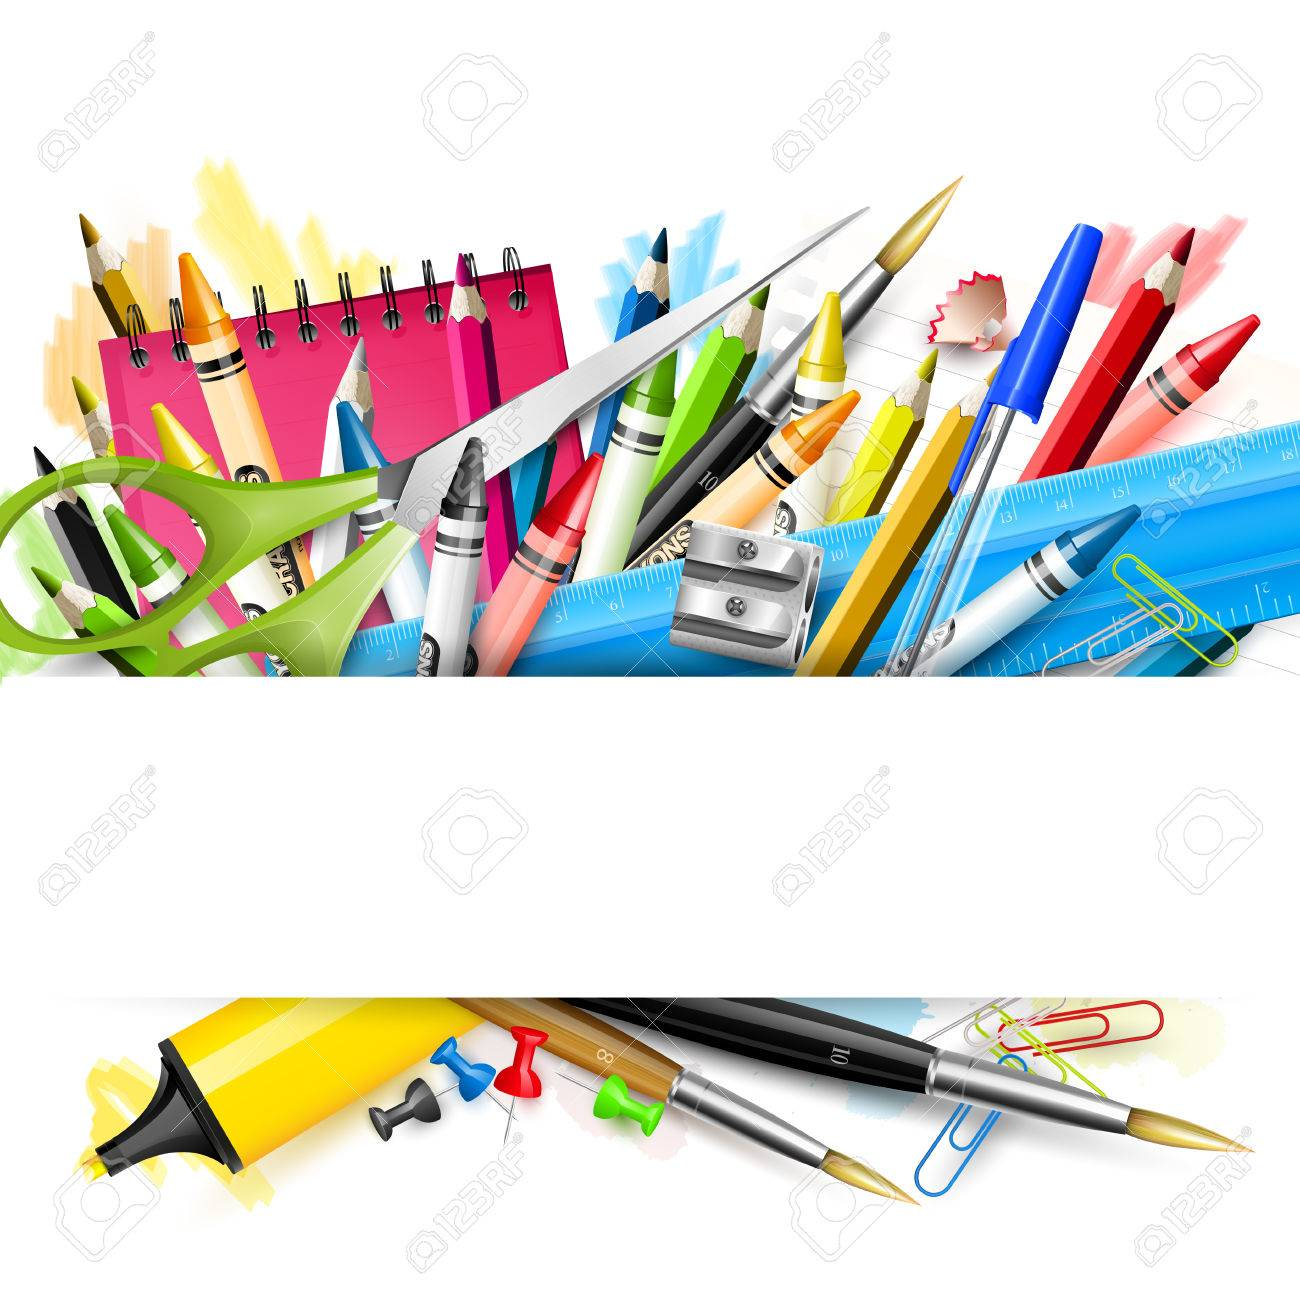 School background with school supplies on white background - 59004984